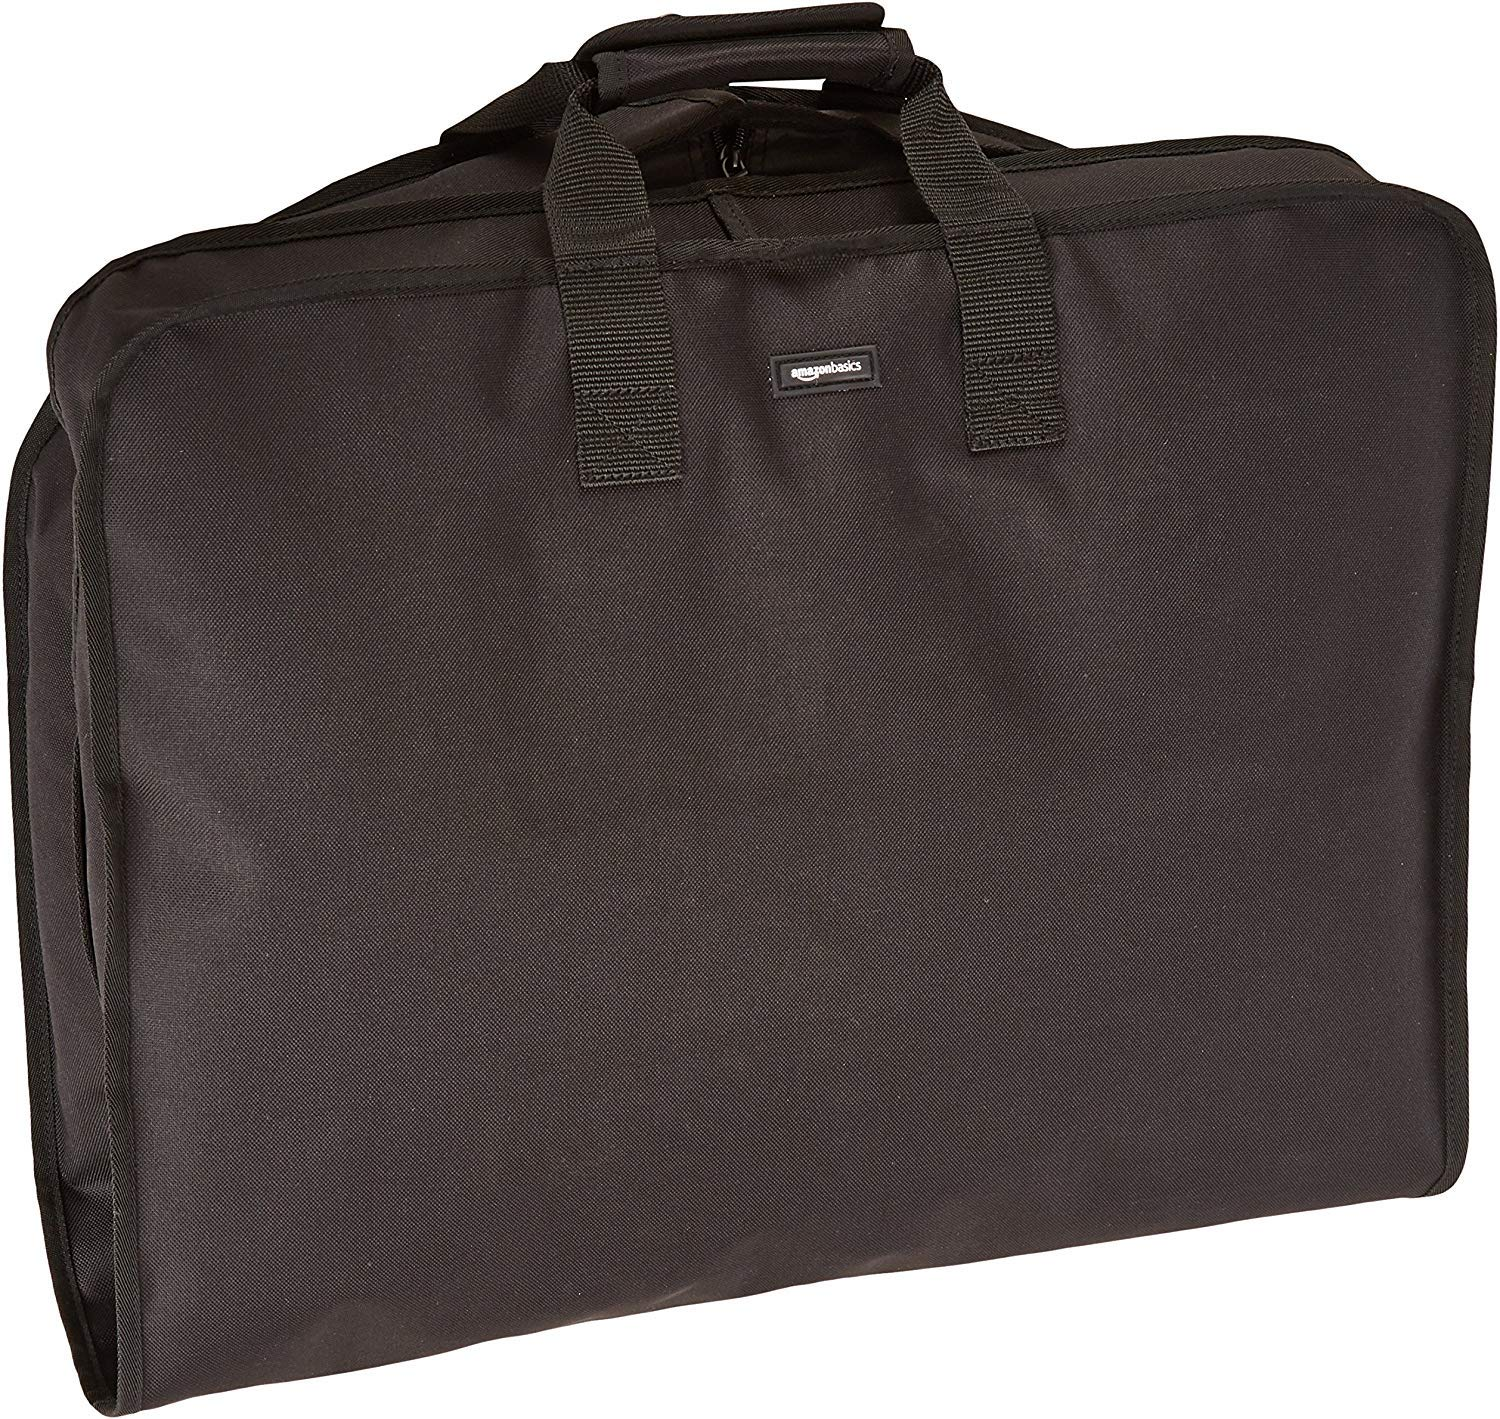 Travel Hanging Luggage Suit Garment Bag - 22 Inch, Black